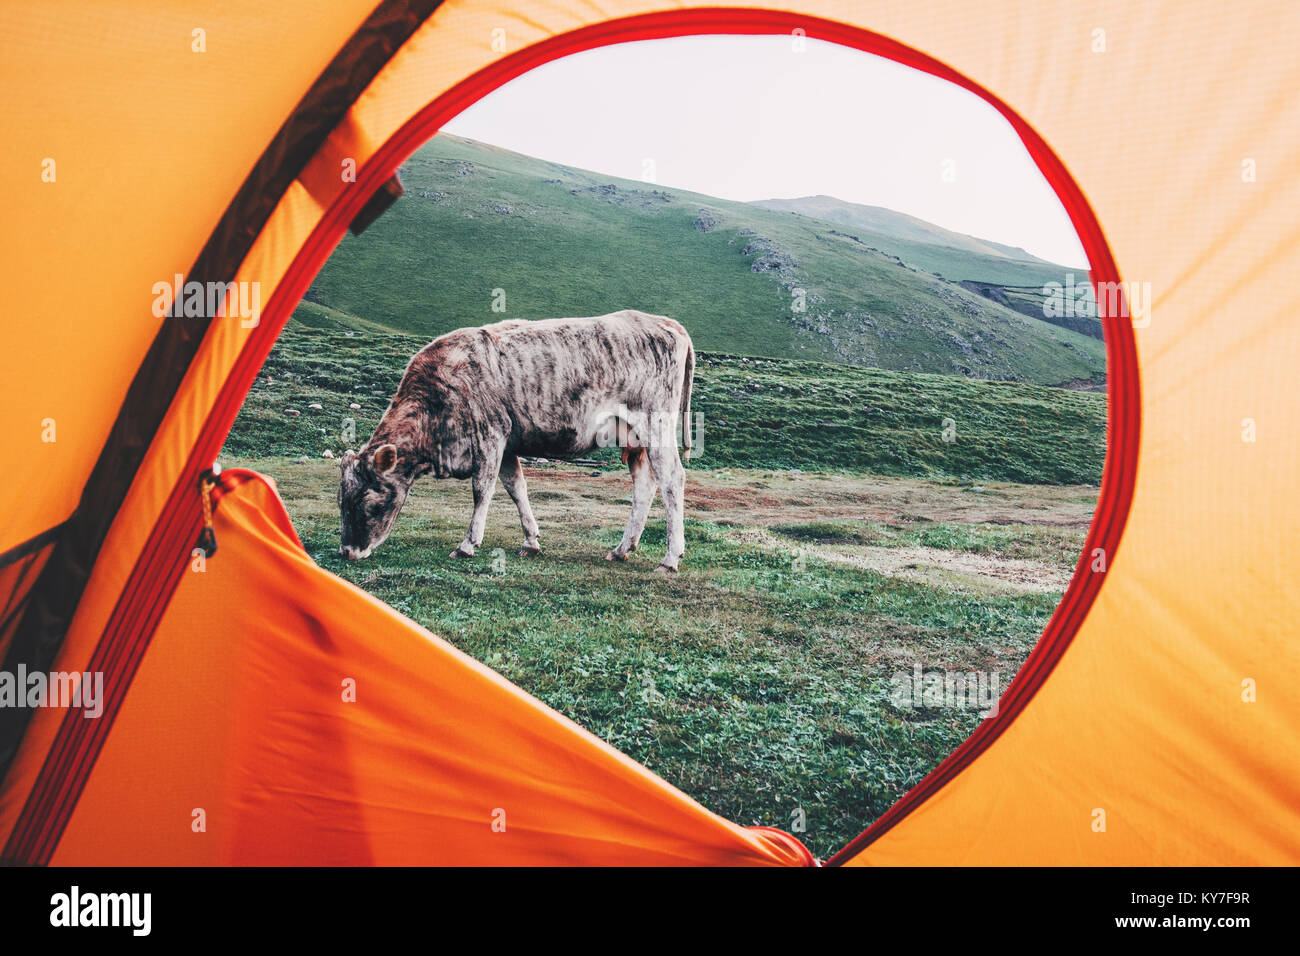 View from tent camping entrance grazing Cow outdoor Travel Lifestyle concept adventure vacations outdoor - Stock Image